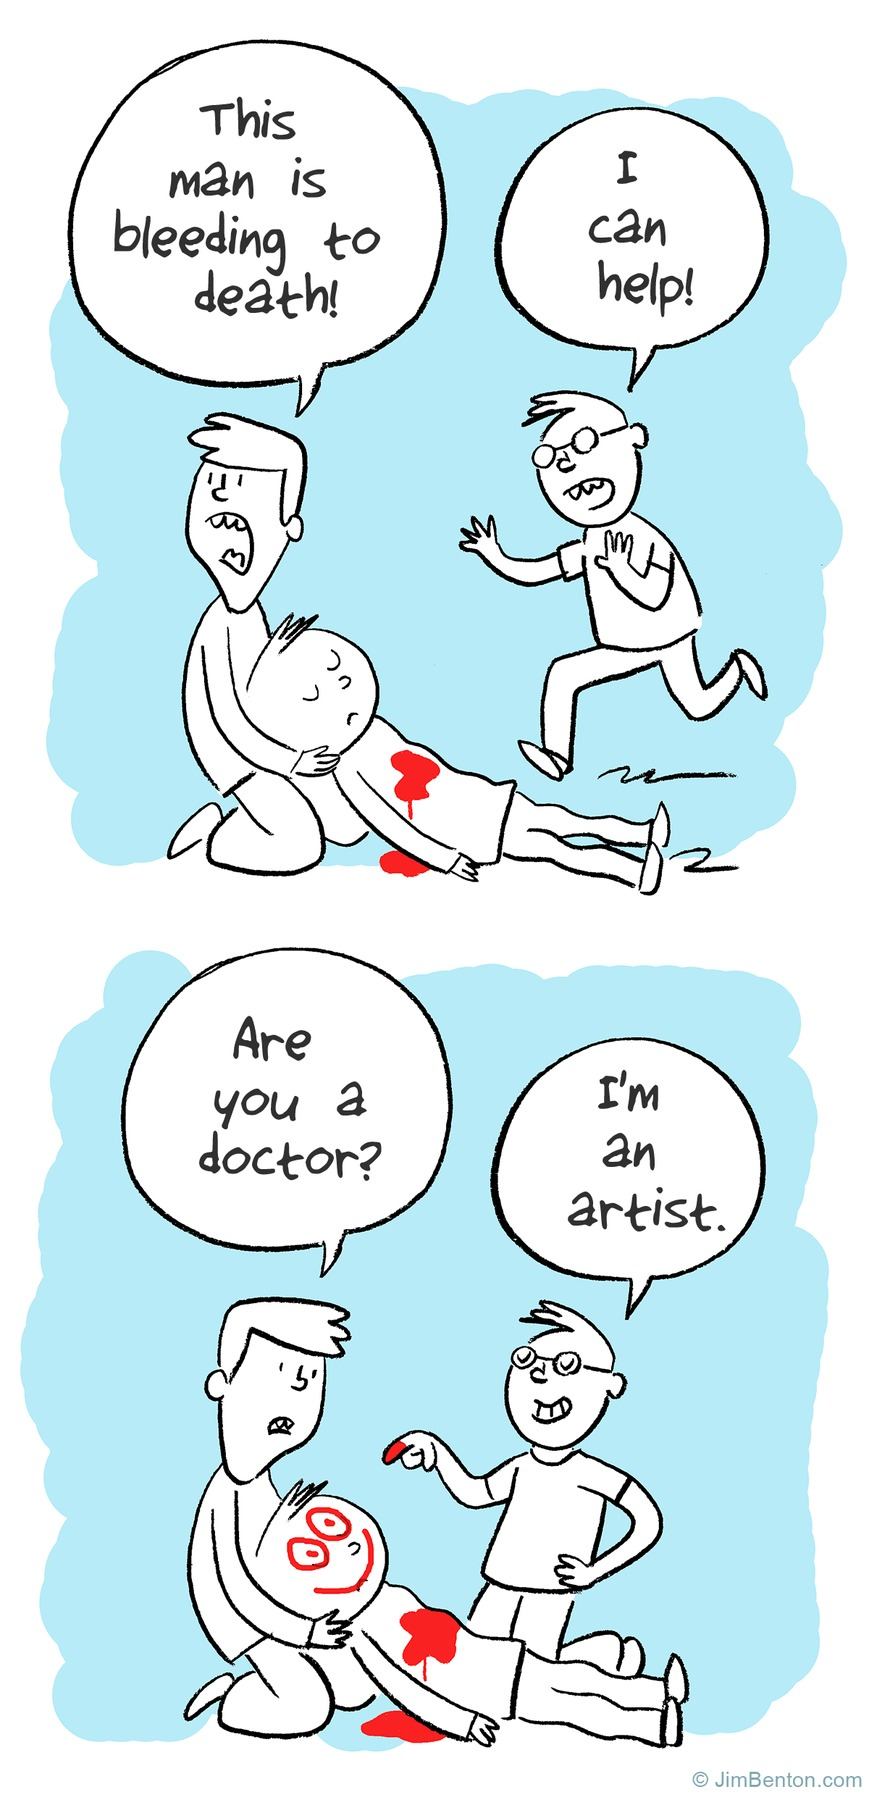 Man: this man is bleeding to death! 